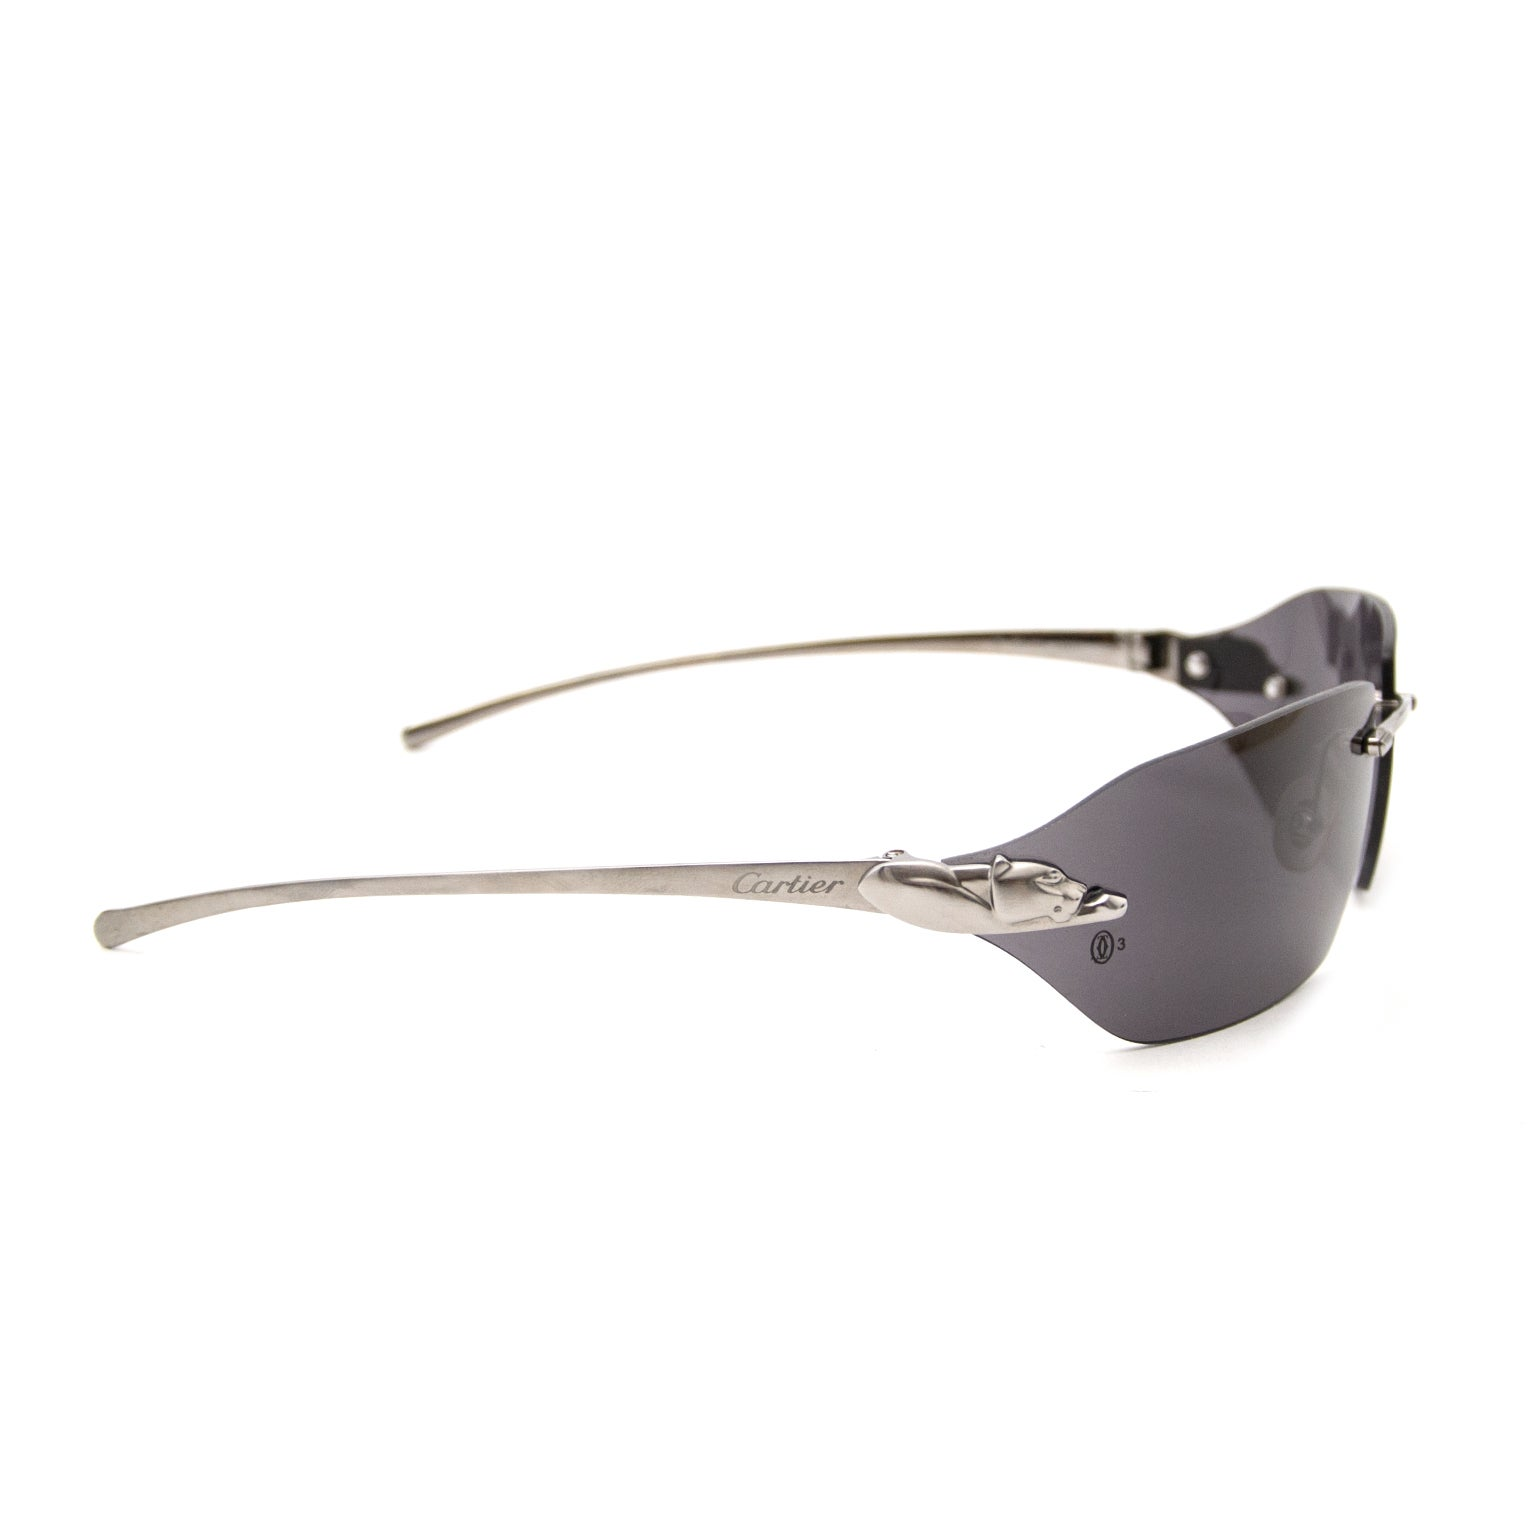 2539c1e3cc3e Cartier panthère de cartier sunglasses at stdibs jpg 1536x1536 Cartier  panther glasses